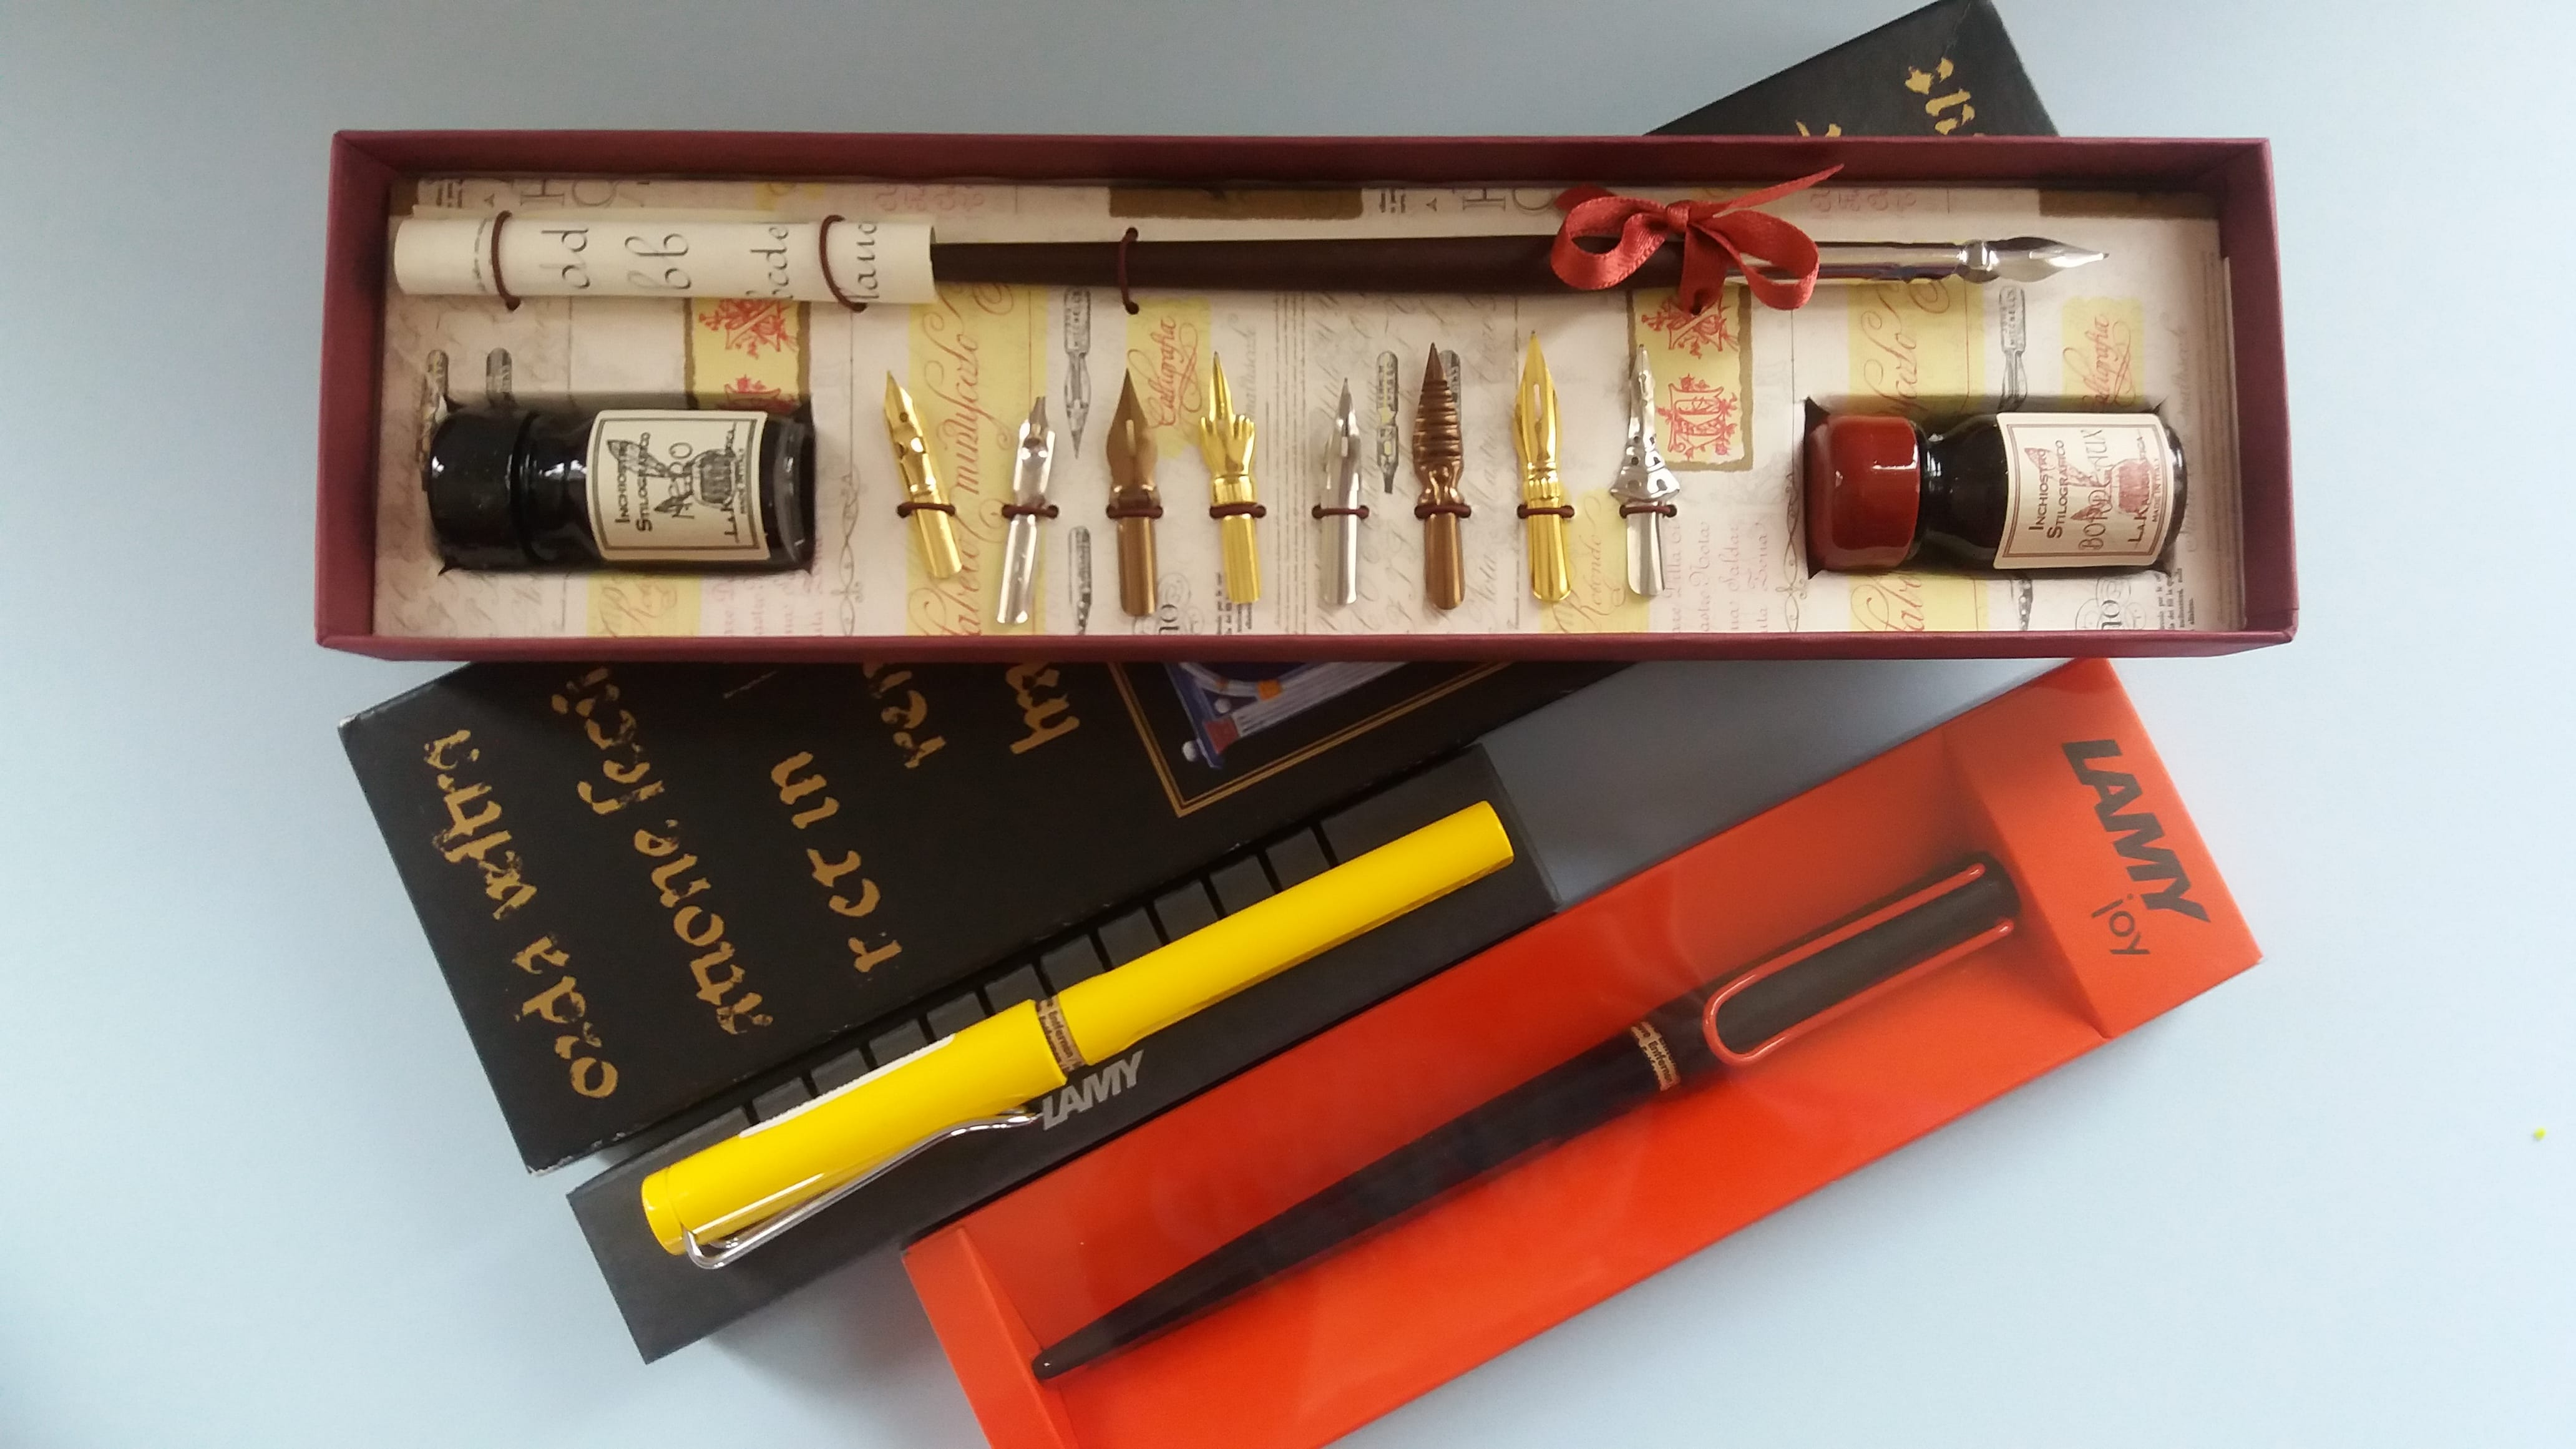 The Pen Shop Calligraphy products